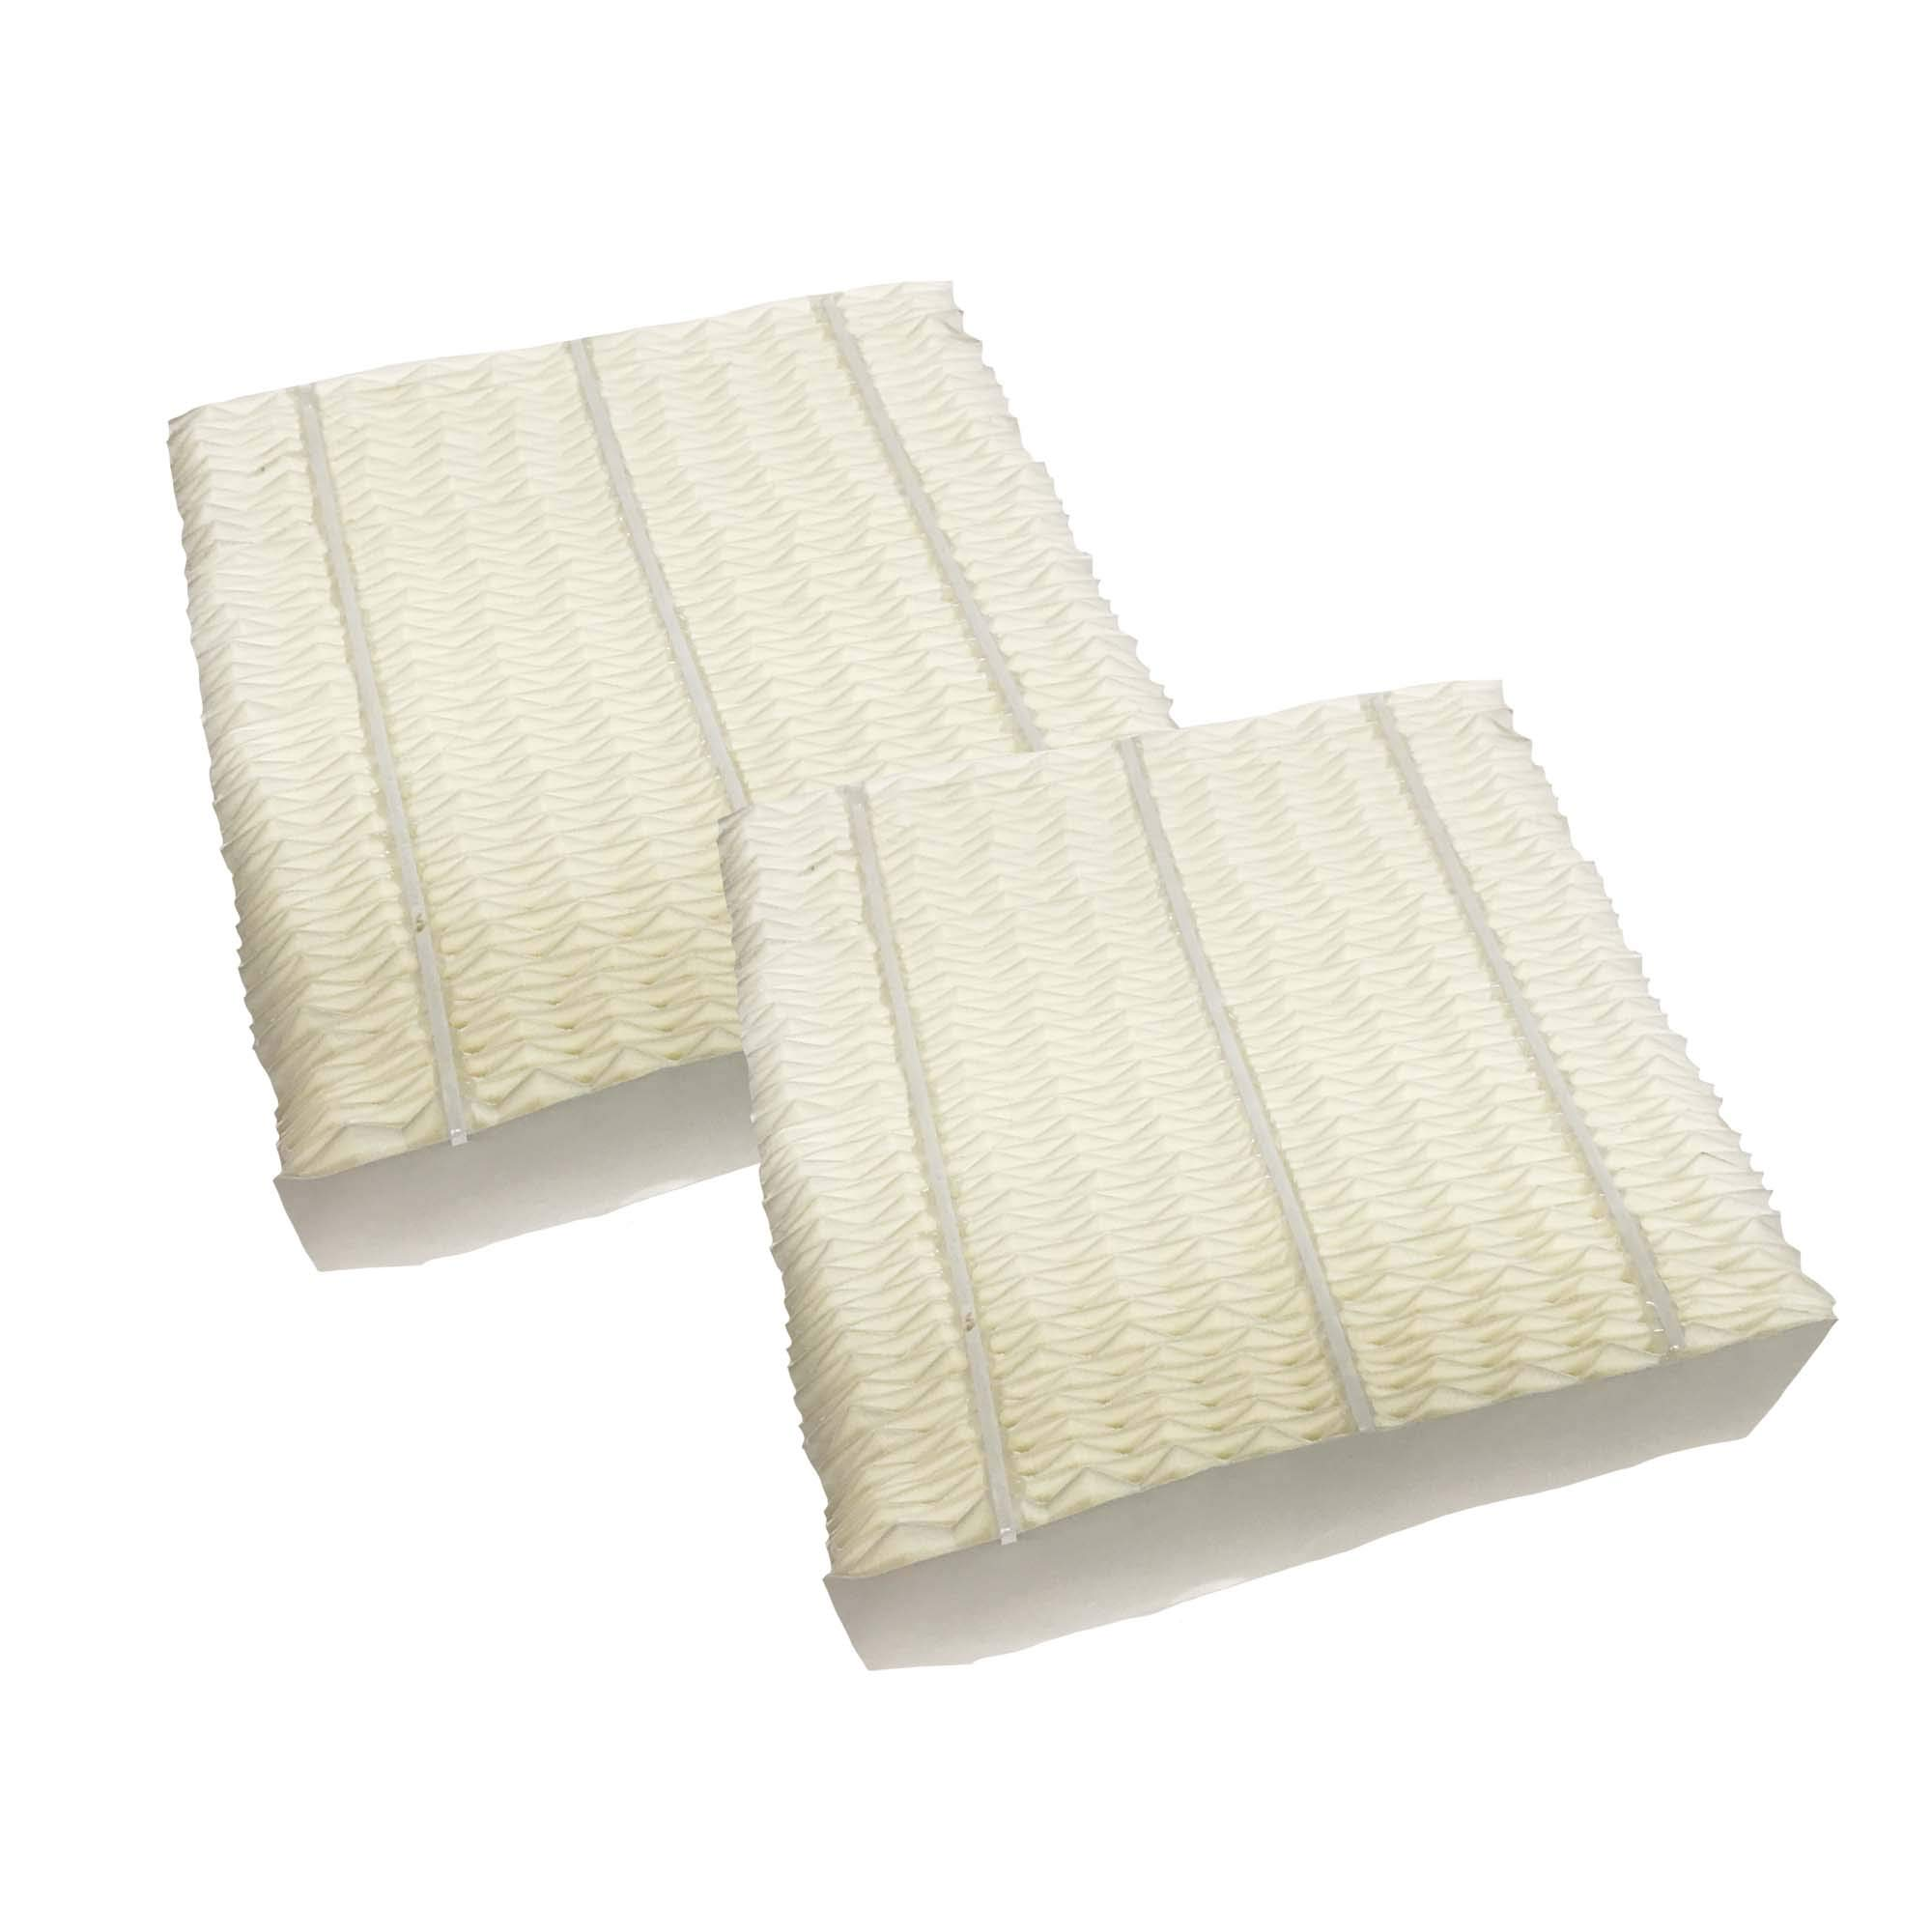 Think Crucial 2 Replacements Aircare 1043 Paper Wick Humidifier Filter Fits Spacesaver 800, 8000 Series Console, 10.8'' x 4.2'' x 12.5''